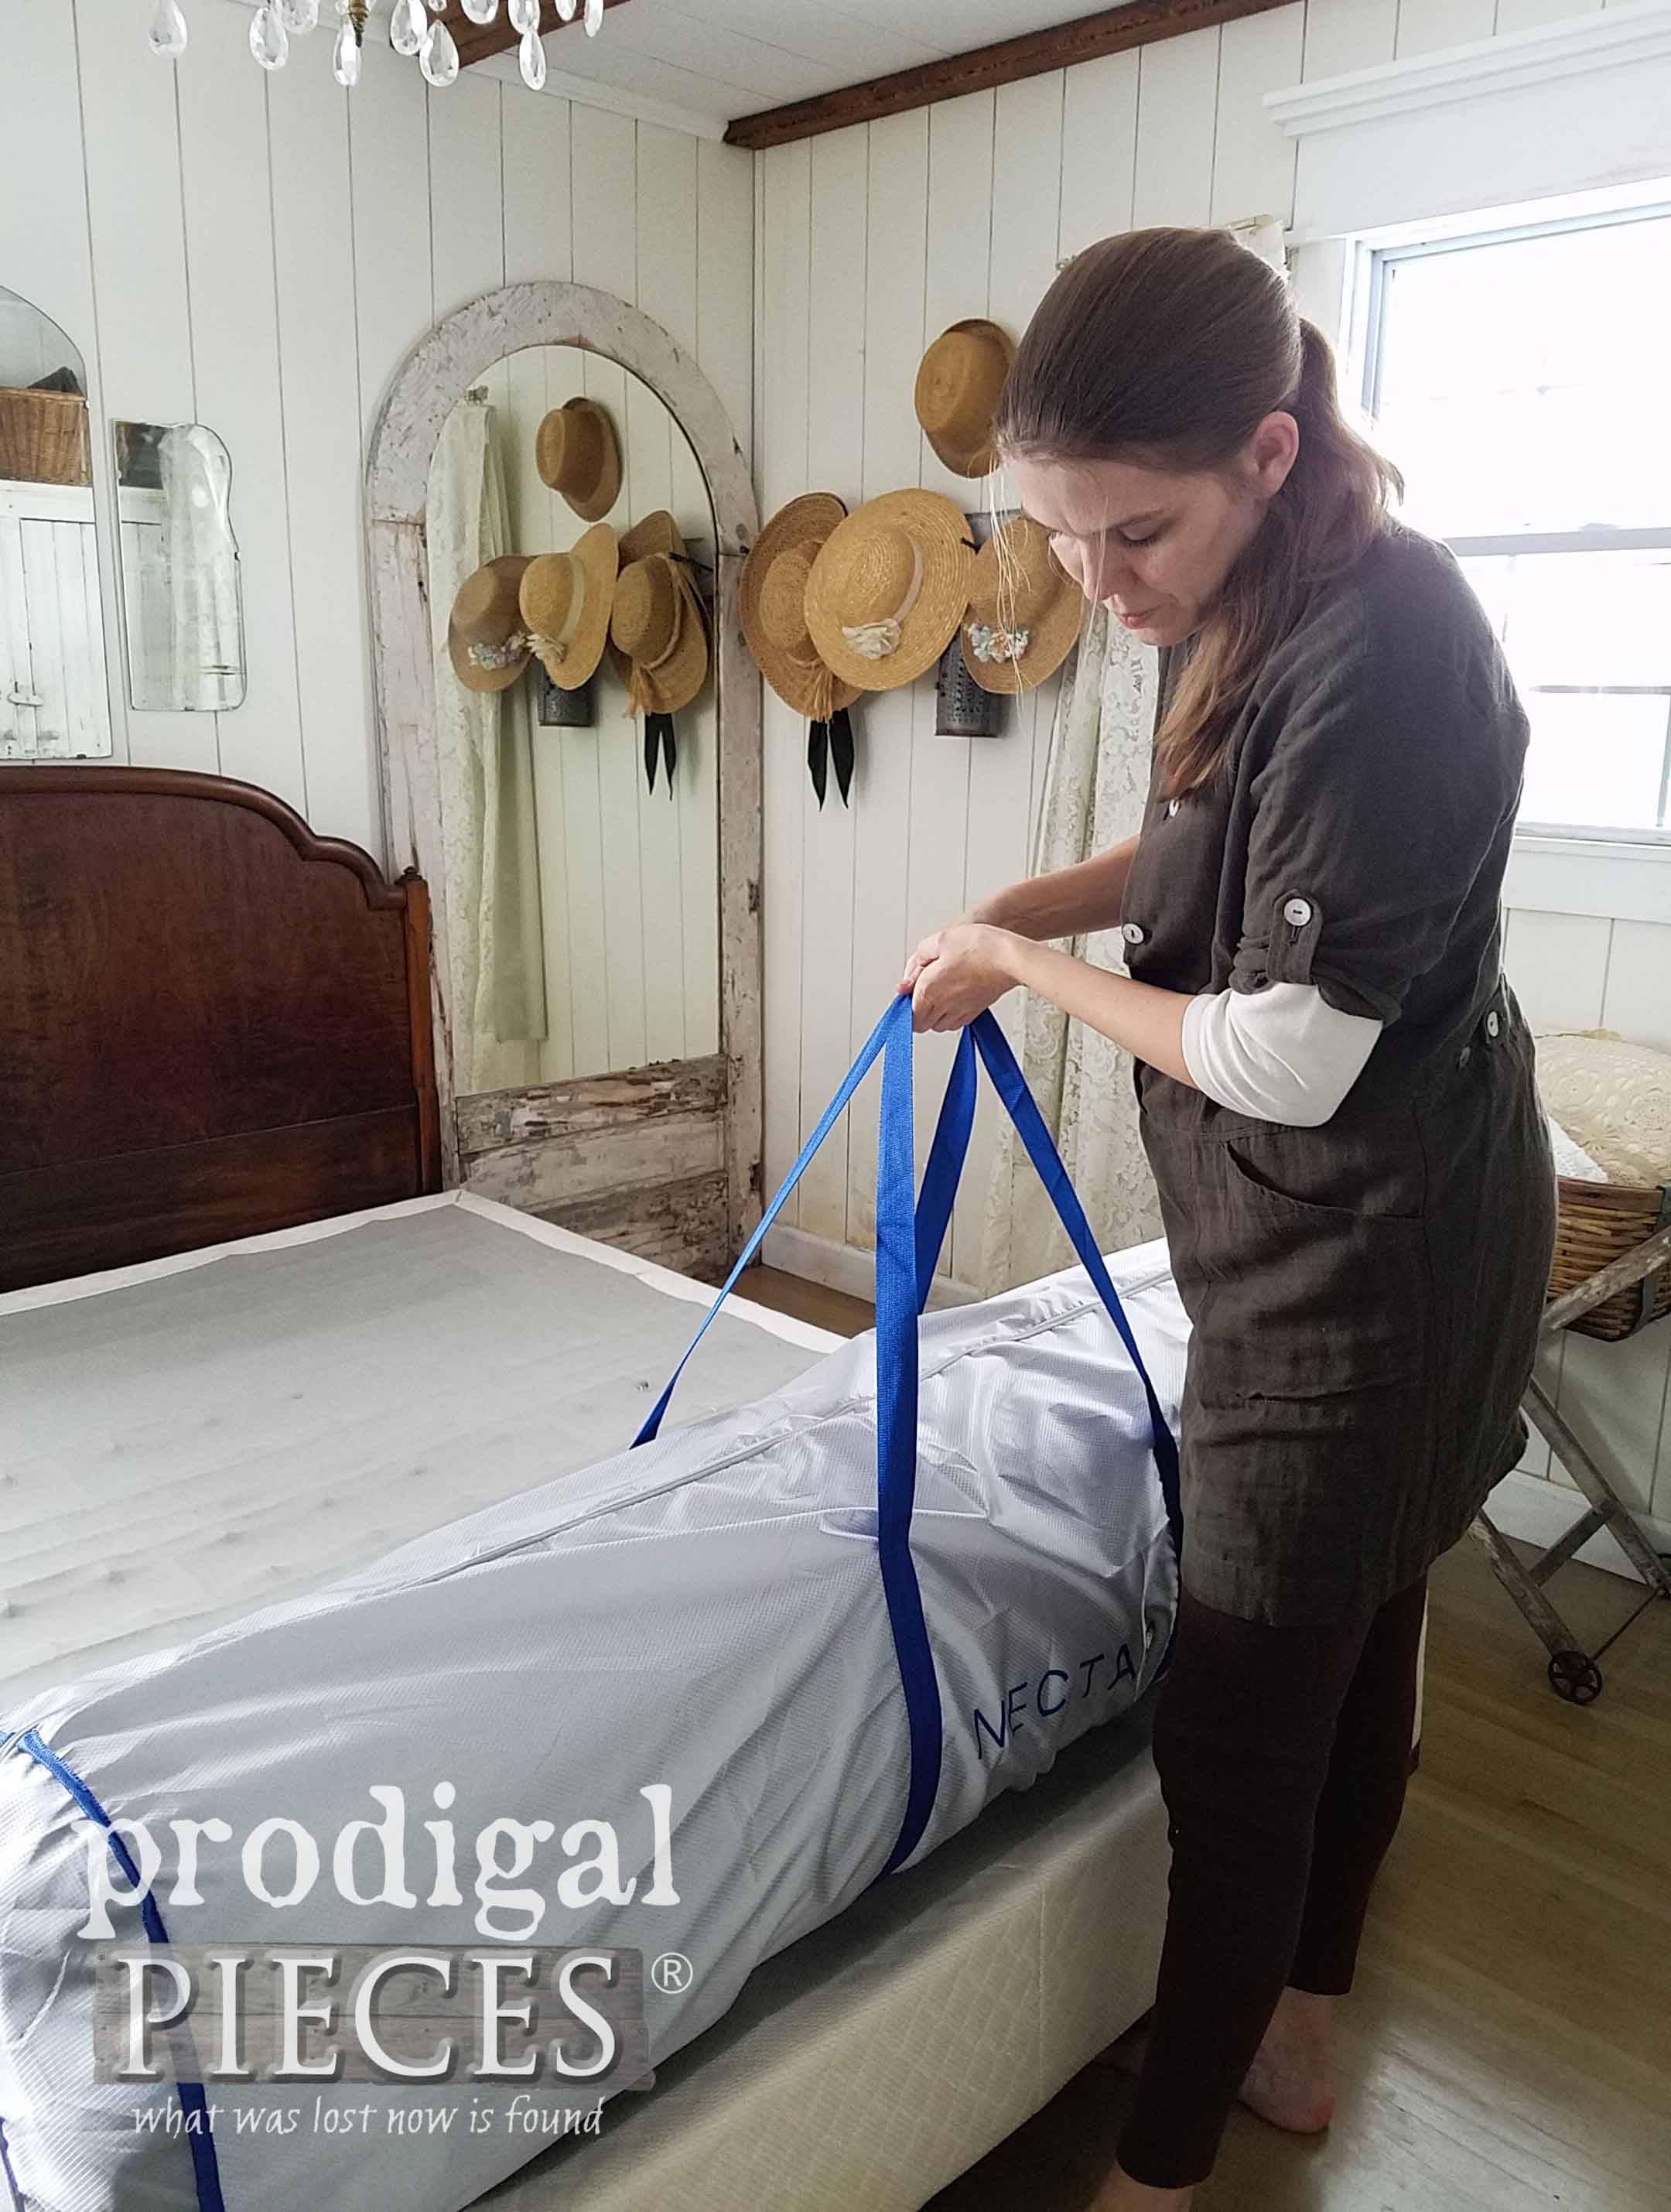 Setting up NECTAR Mattress for Review by Prodigal Pieces | prodigalpieces.com